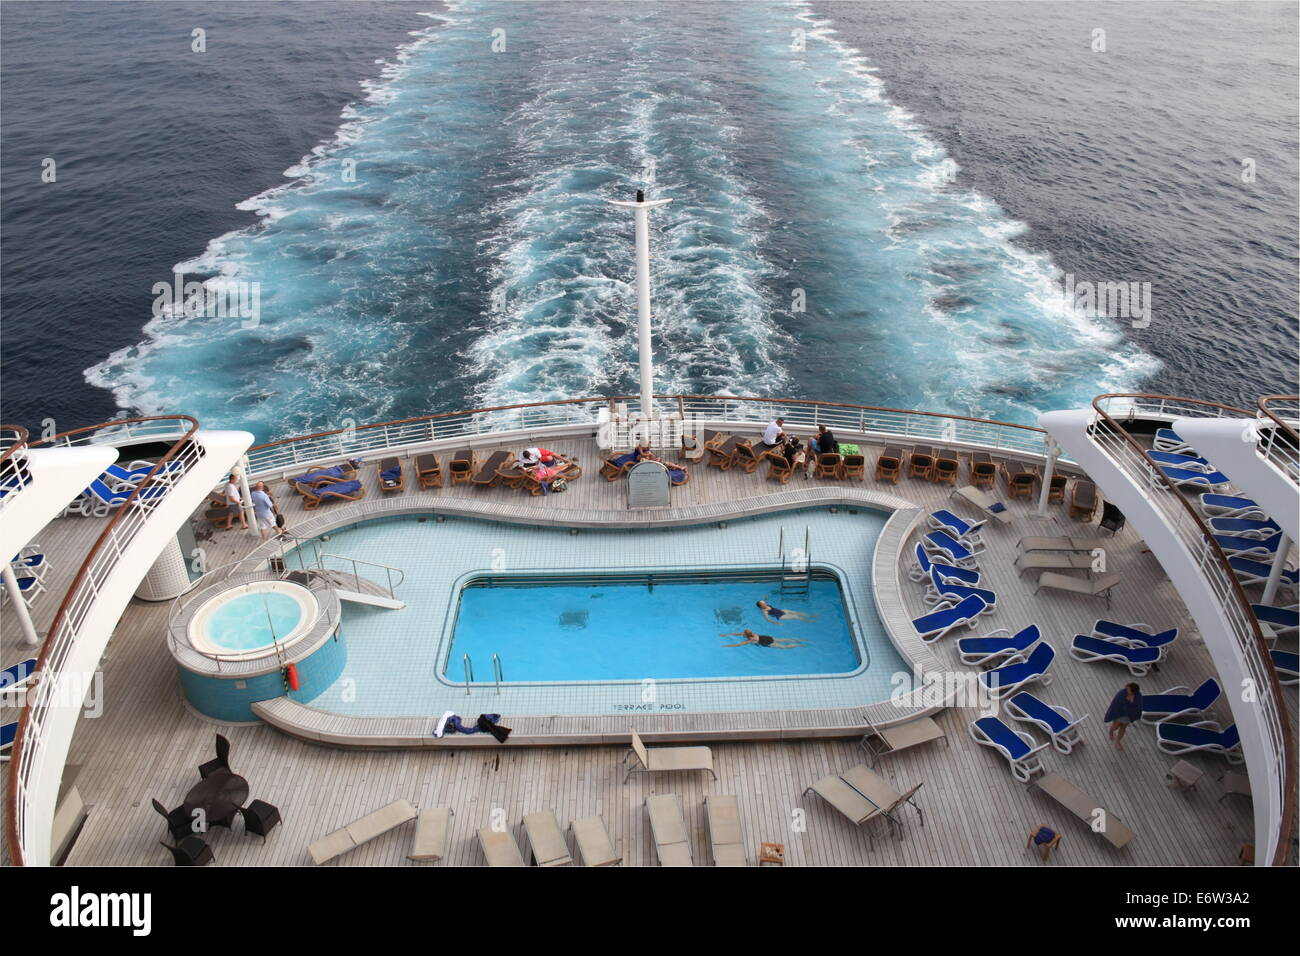 Terrace Pool on aft deck, P&O Cruises Oriana, Norway 2014 Stock Photo